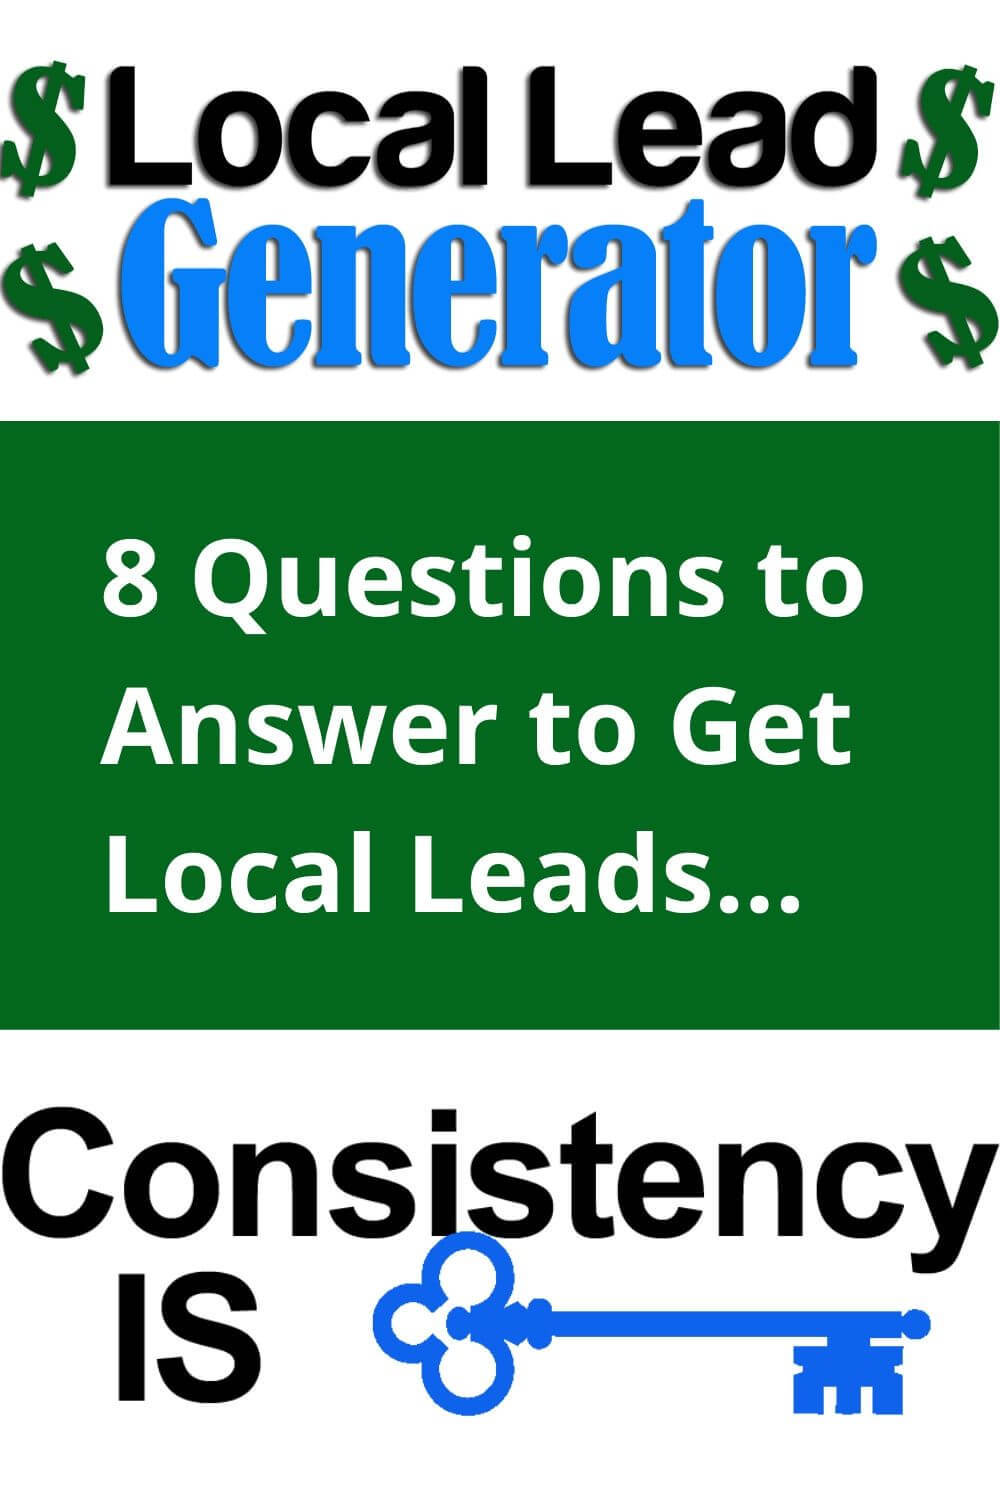 8 querstions to answer to get local leads...